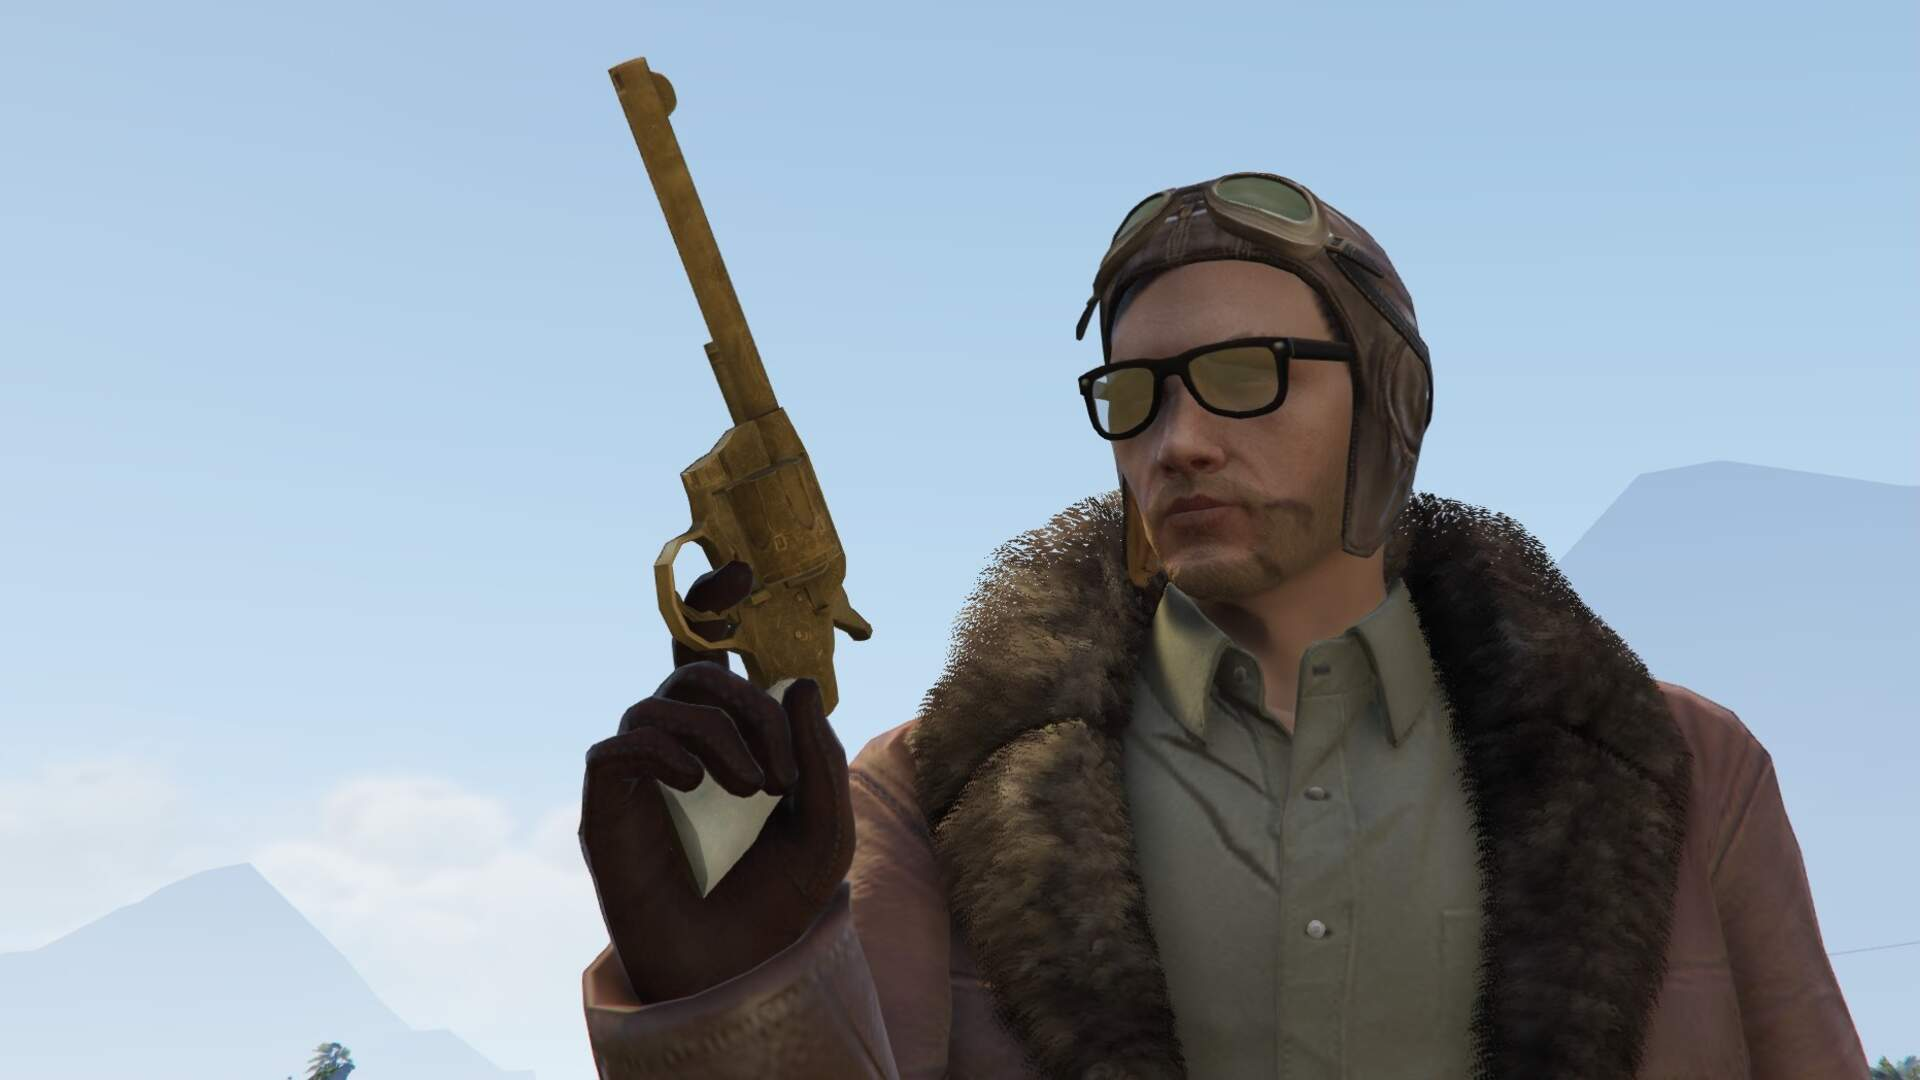 How to Get the Best Weapons in GTA Online